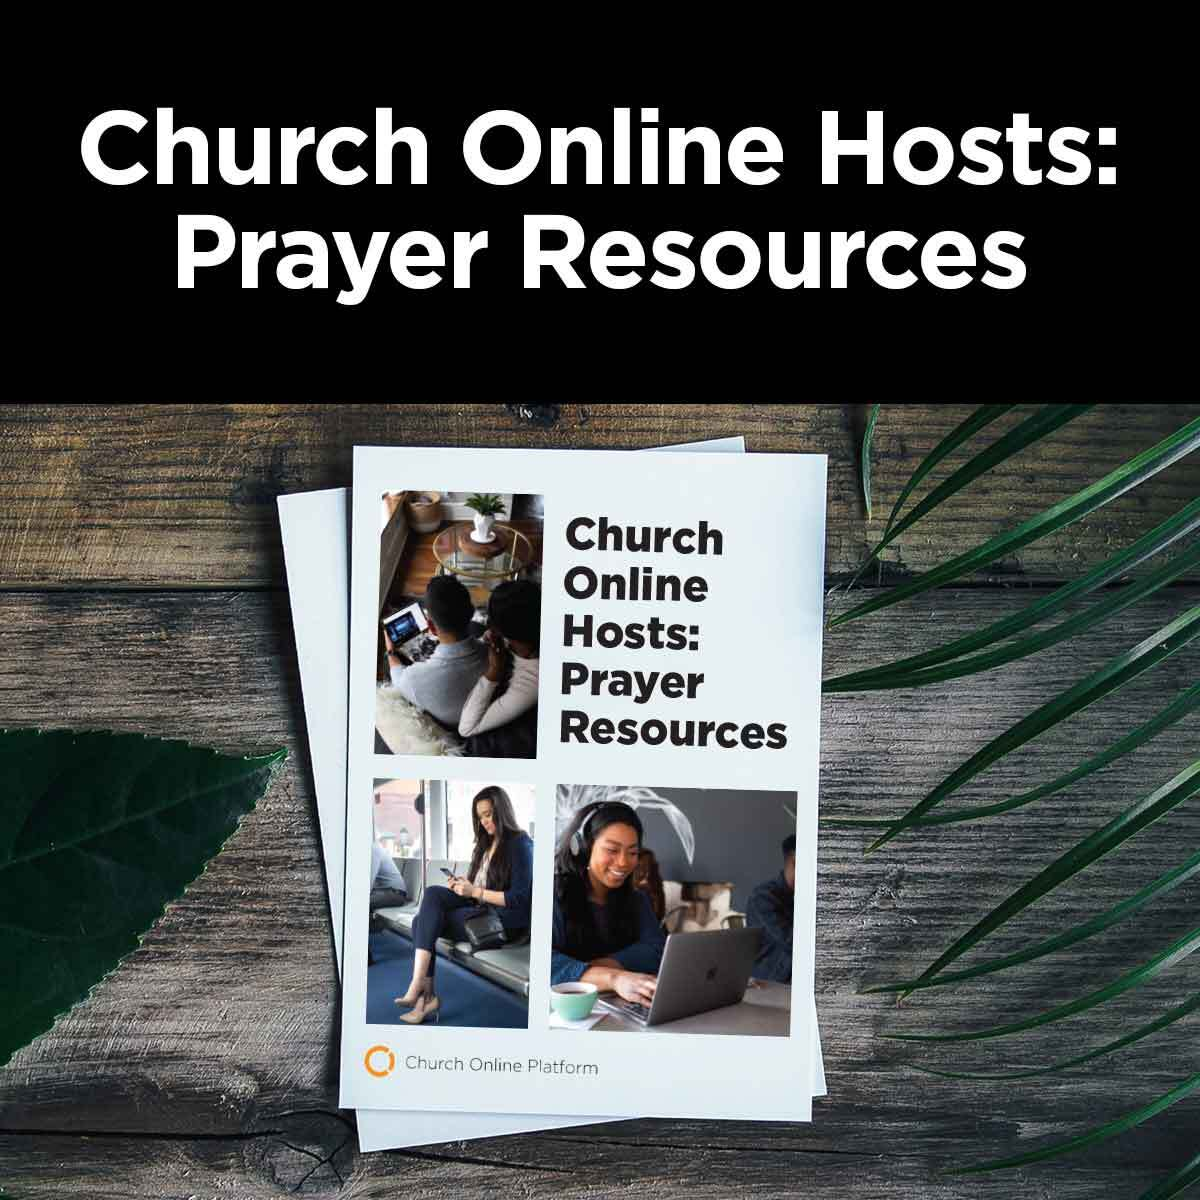 Church Online Hosts: Prayer Resources